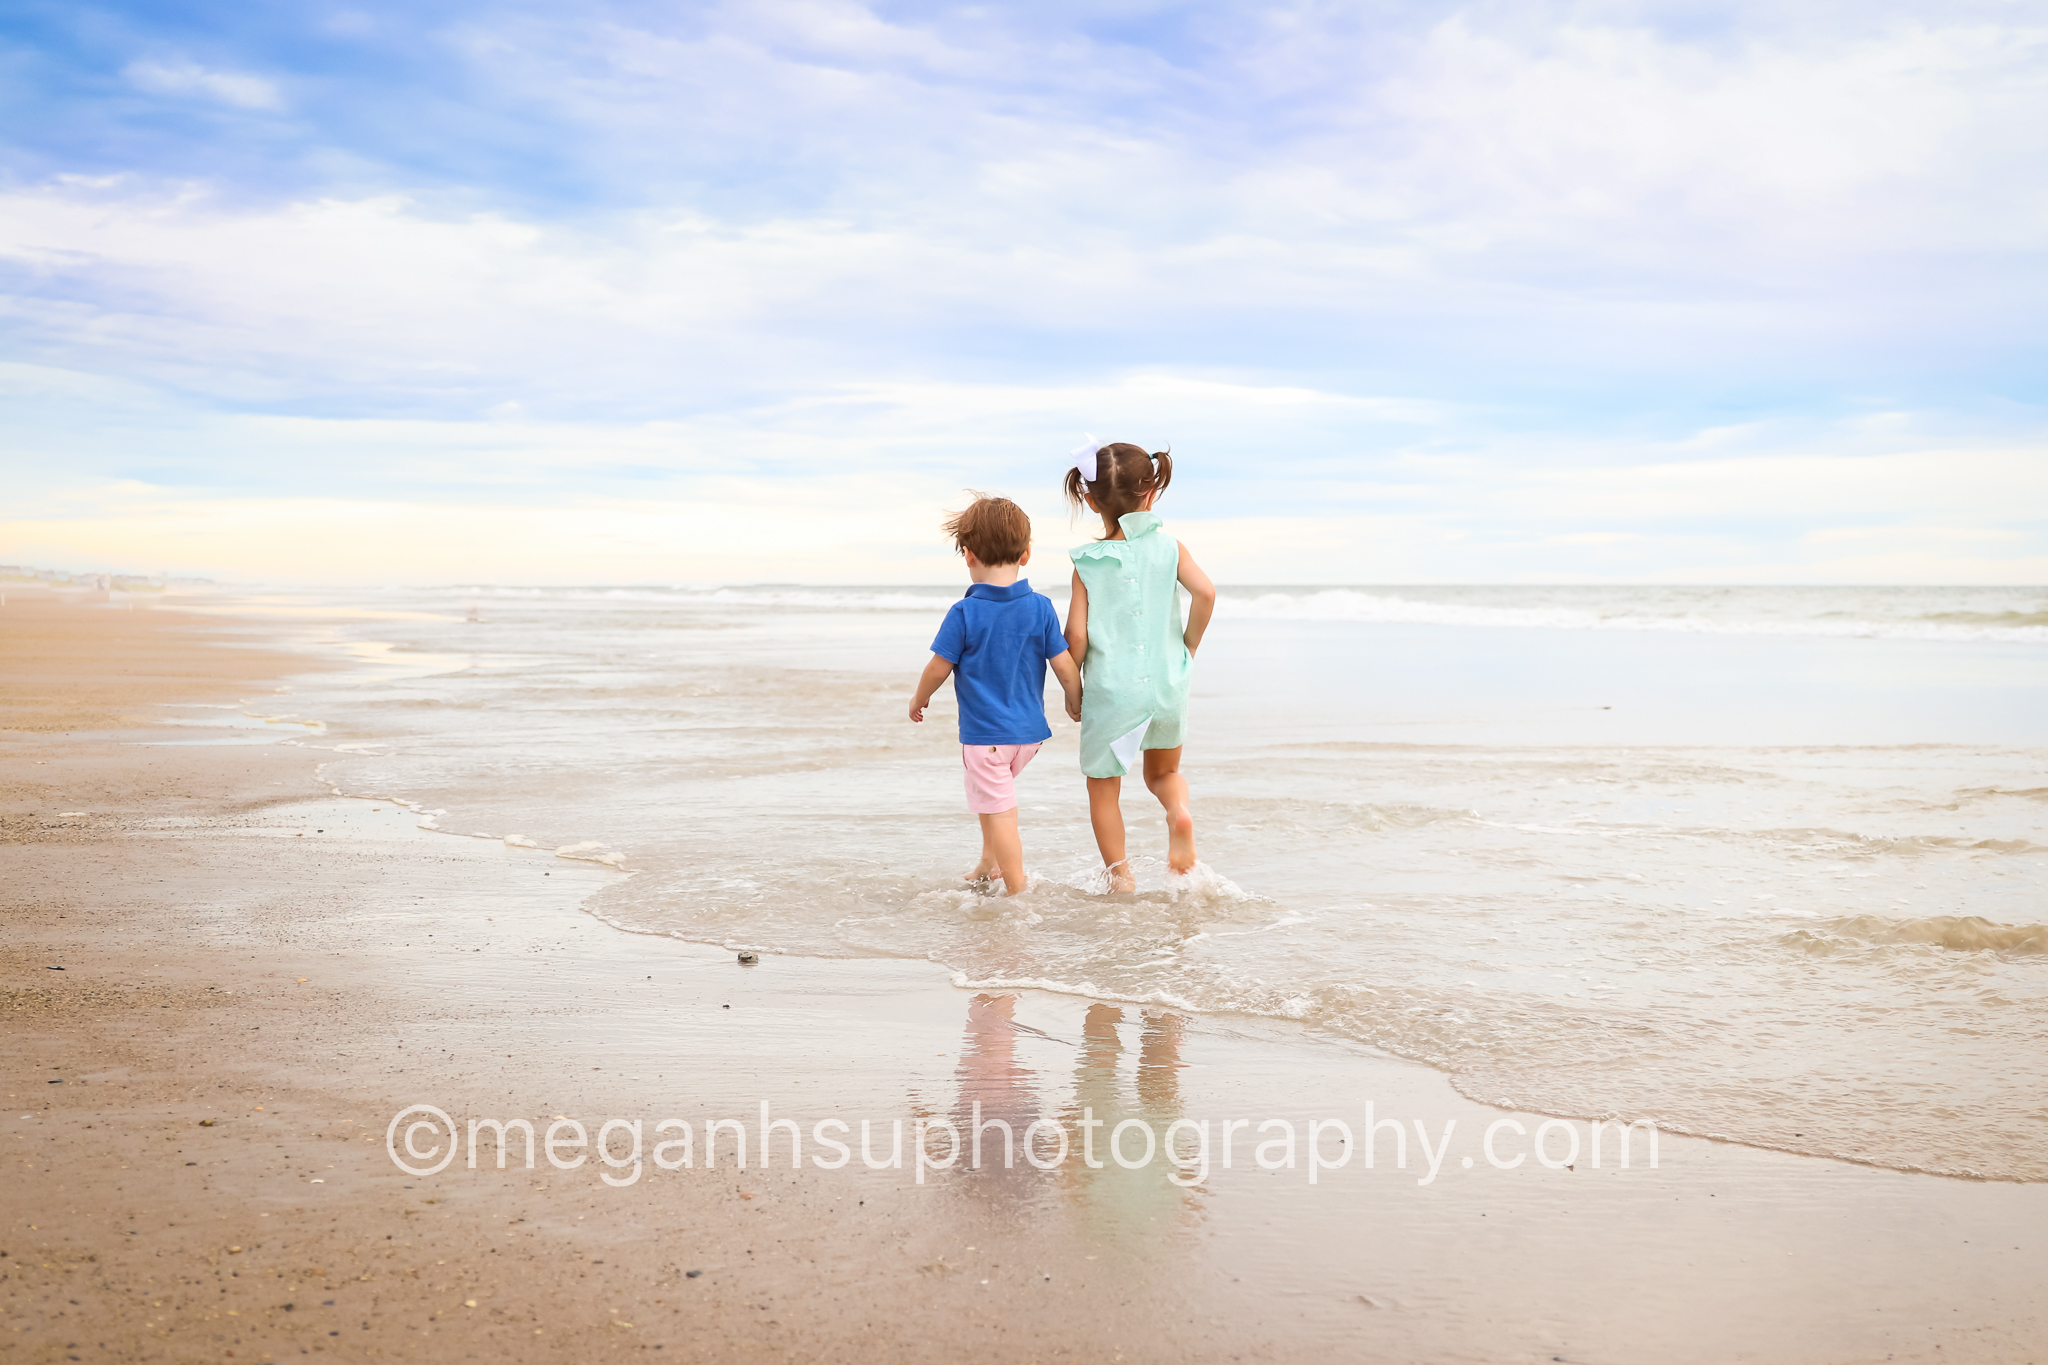 topsail-beach-photographer-photography-kids-brother-sister-walking-on-beach